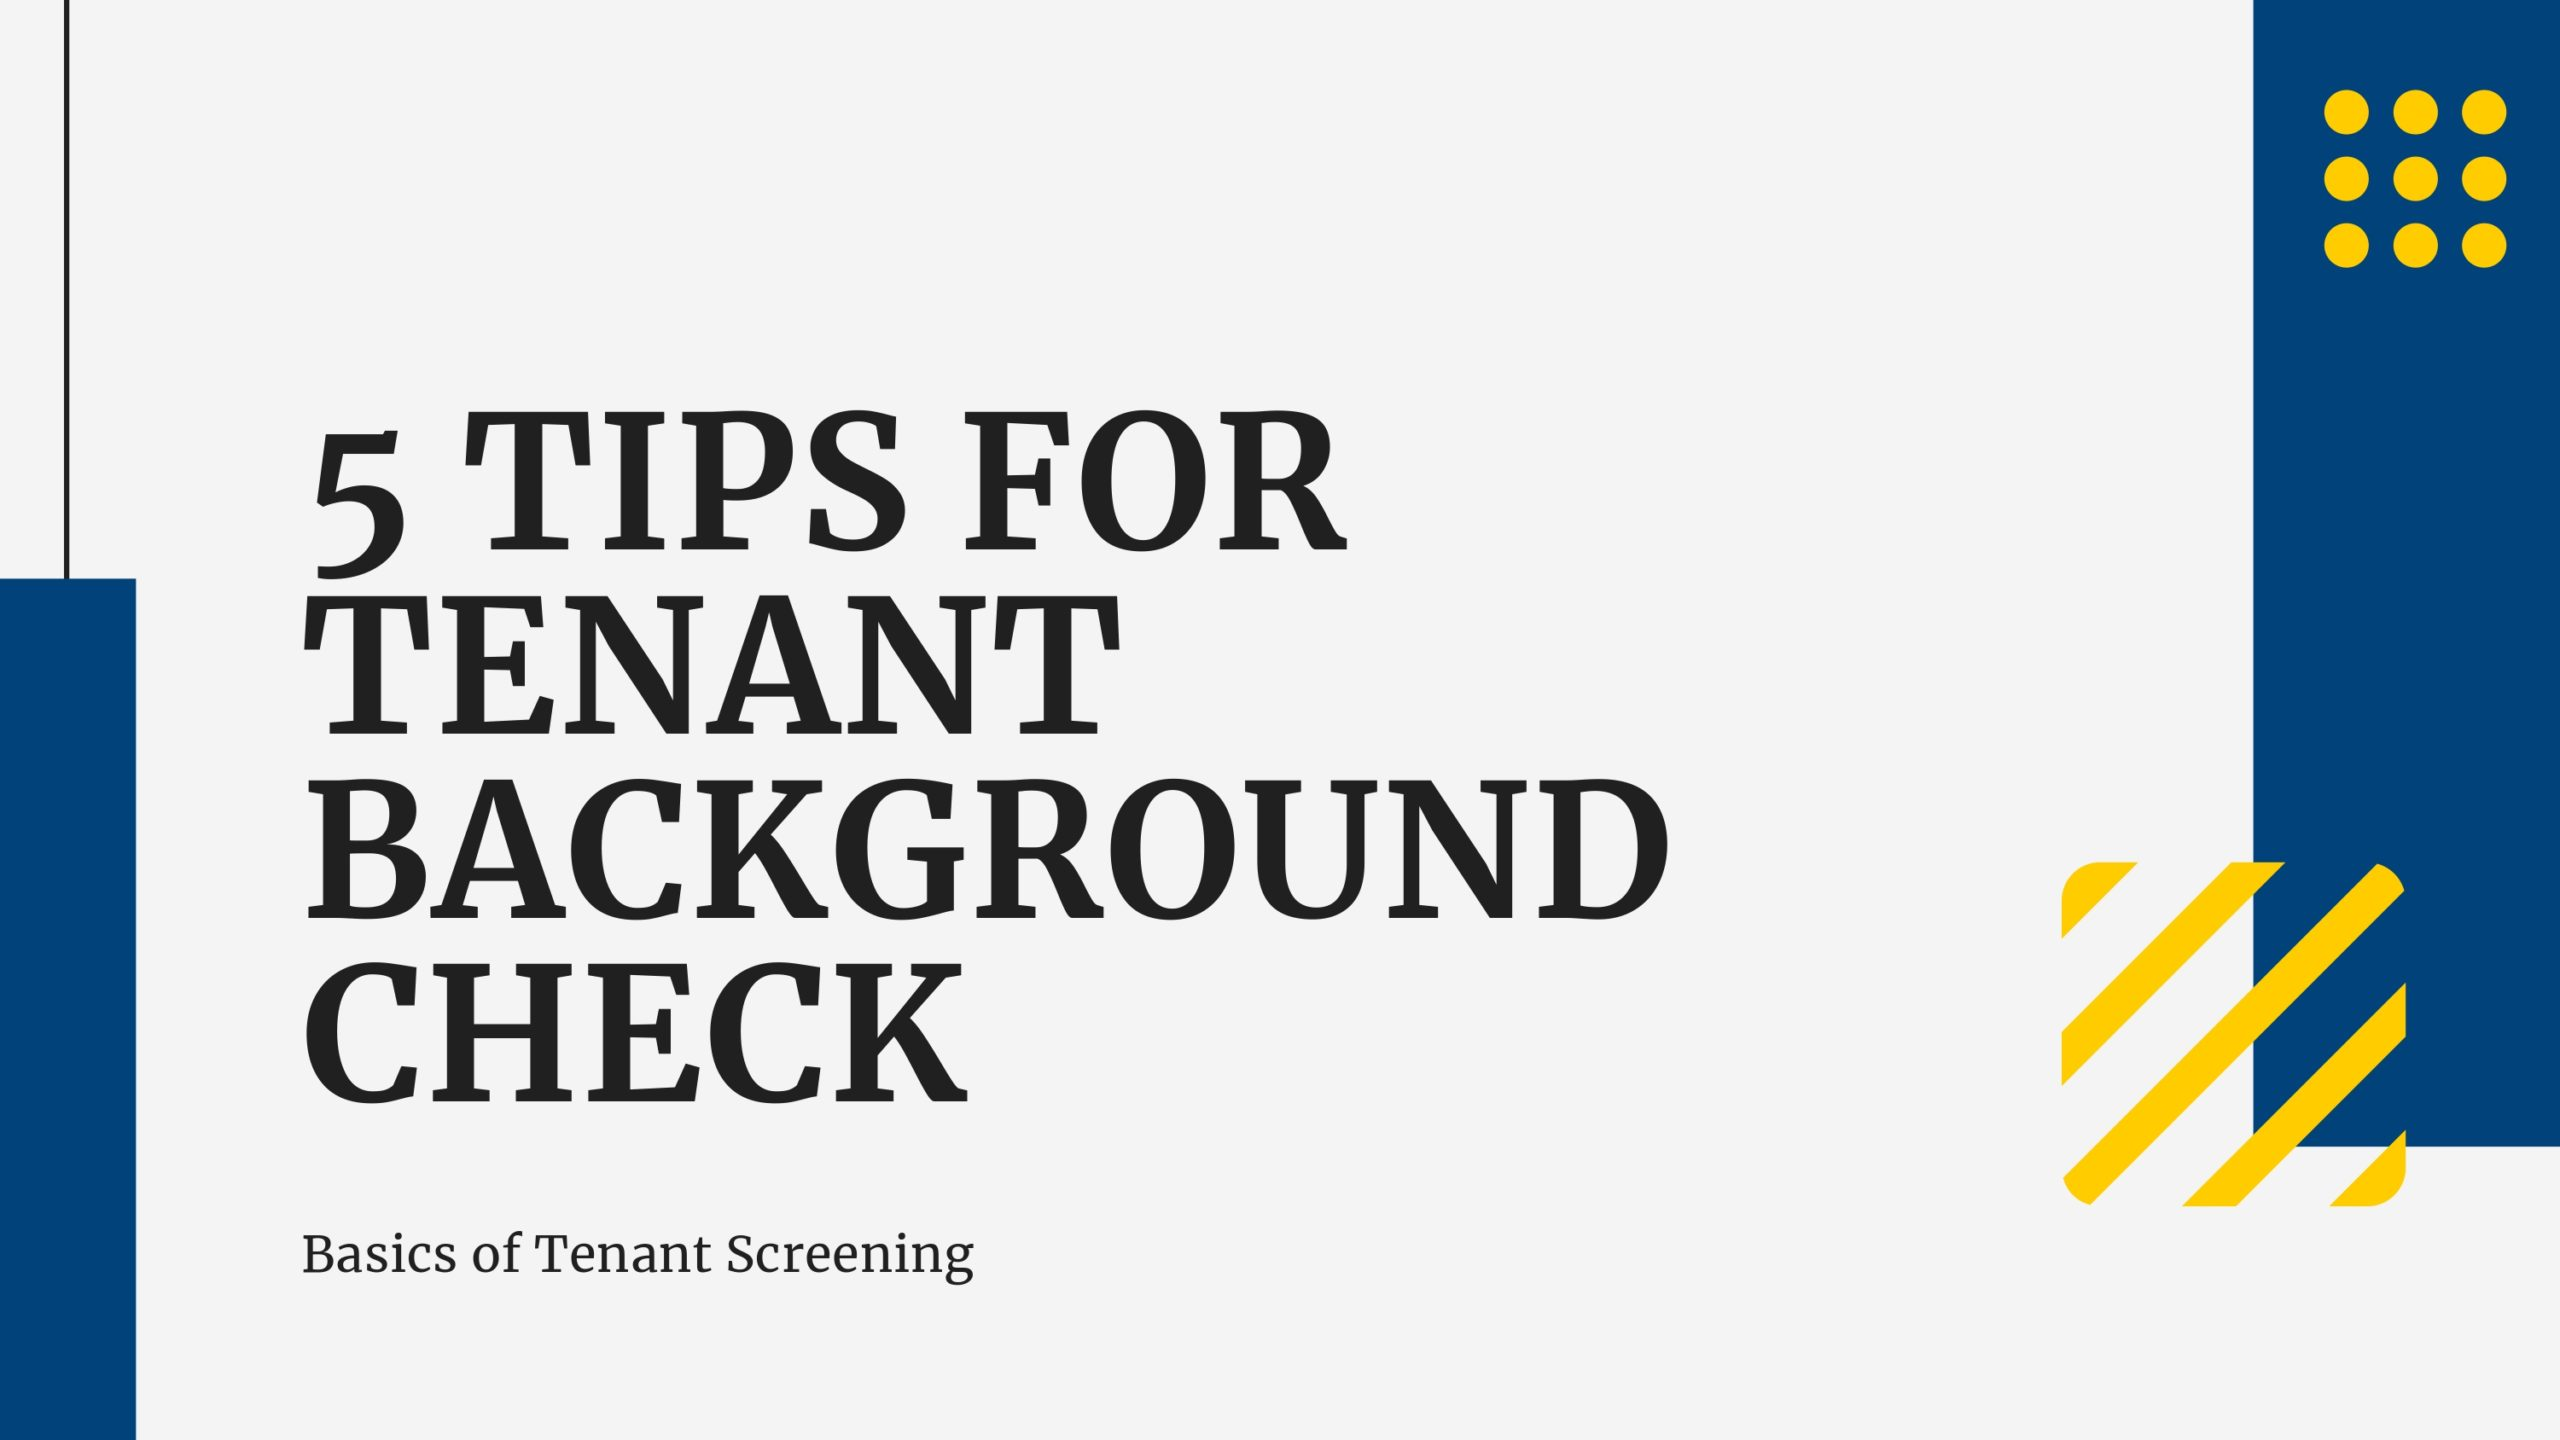 5 Tips for Tenant Background Check